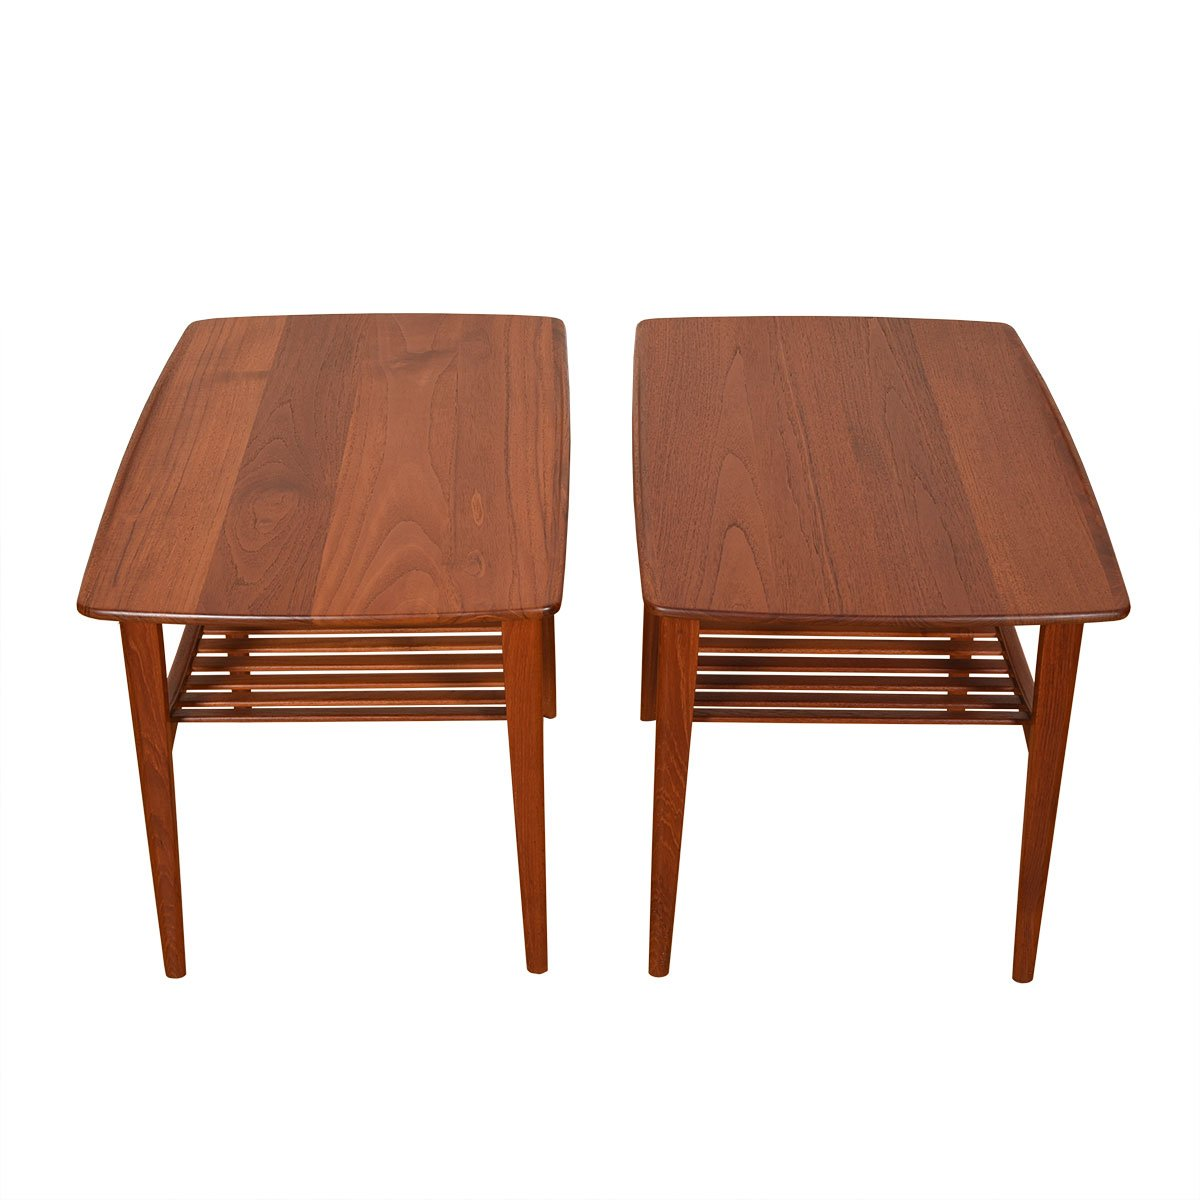 Pair Solid-Teak End Tables w/ Slatted Shelves